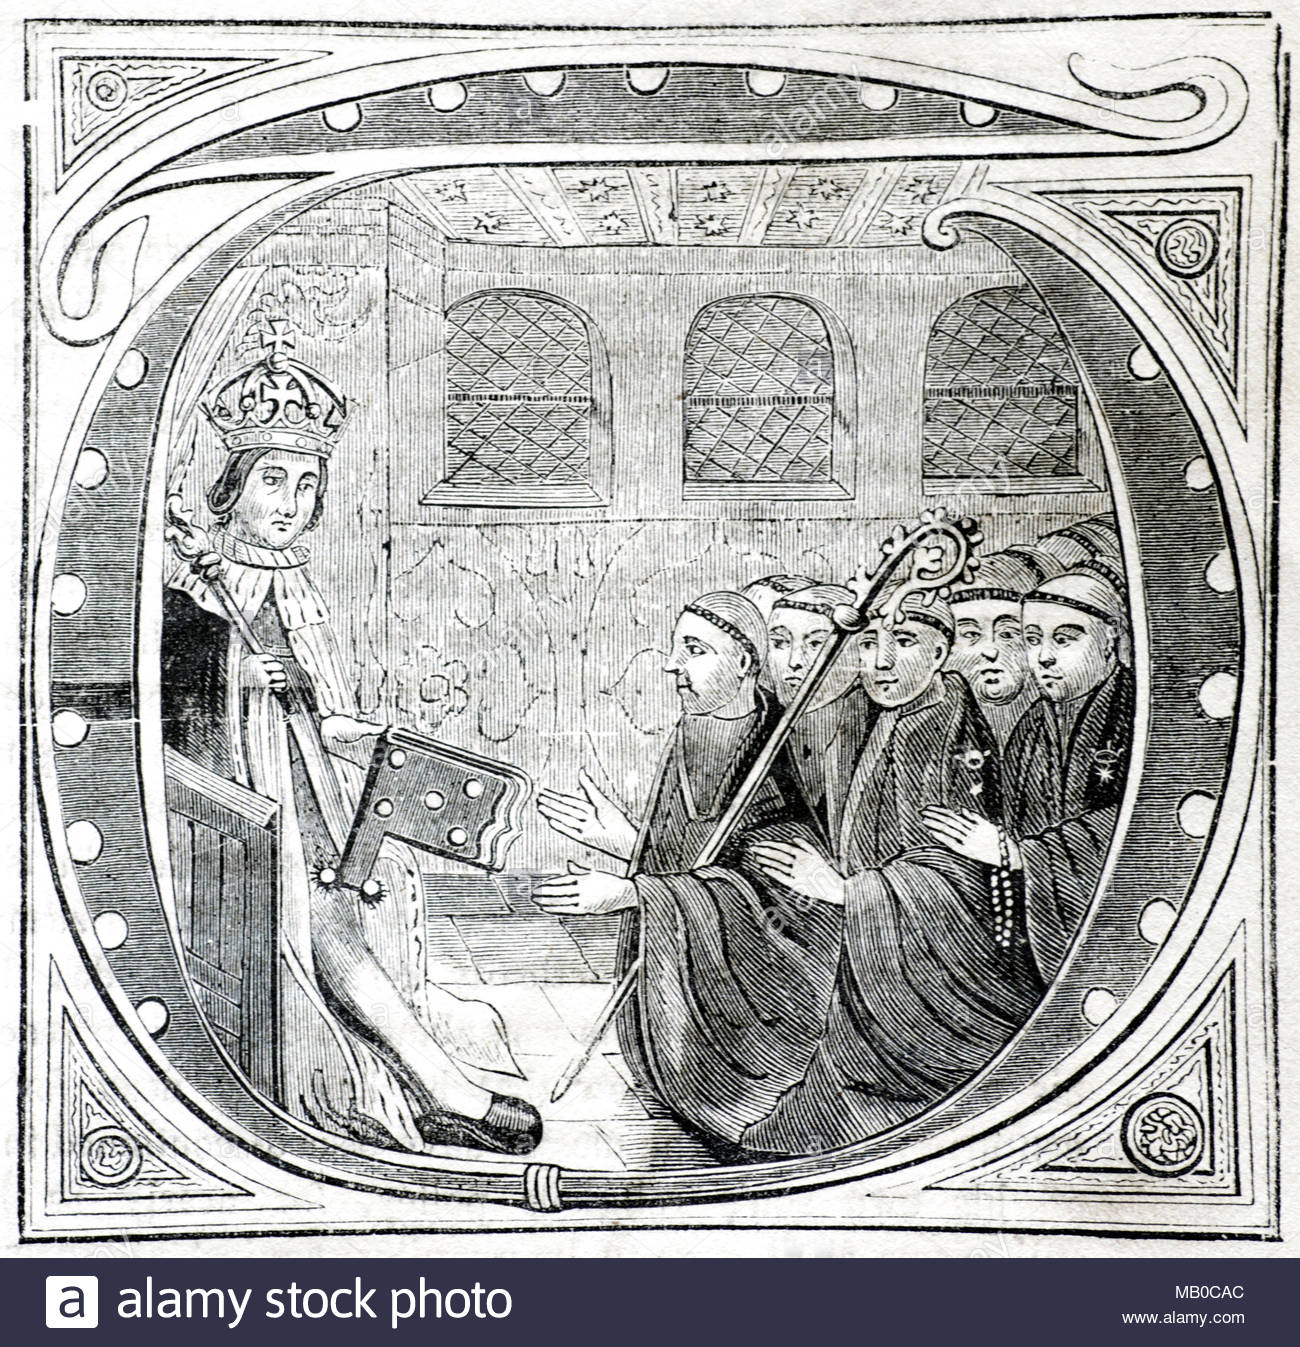 King Henry VII delivering to John Islip, Abbot of Westminster, the book of Indenture in 1498, antique illustration from circa 1860 - Stock Image